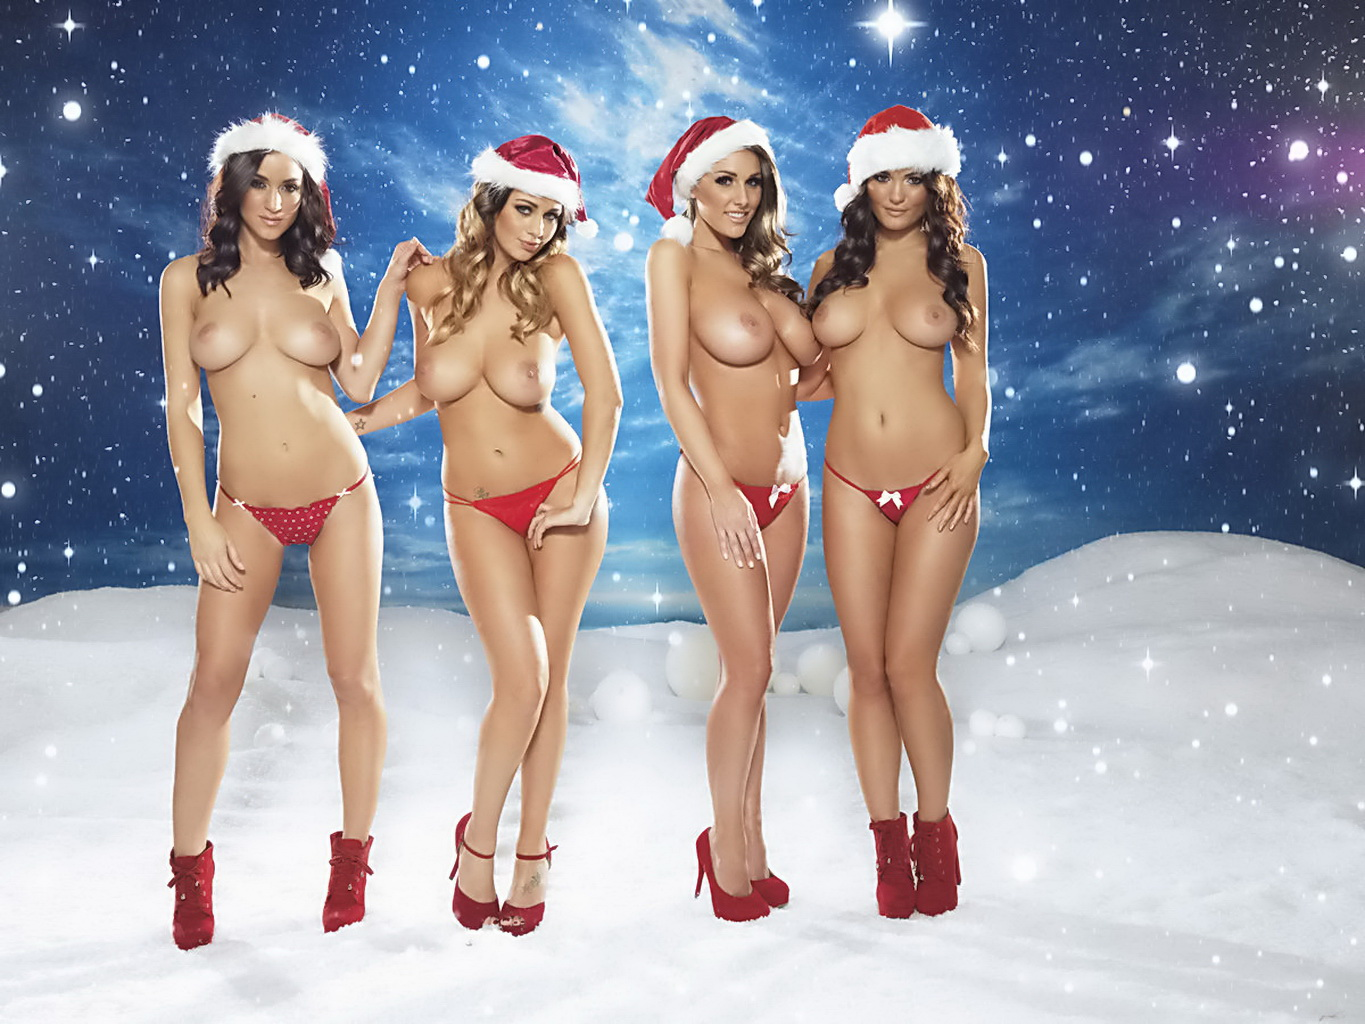 Santa girl topless pics sex stories erotic pictures